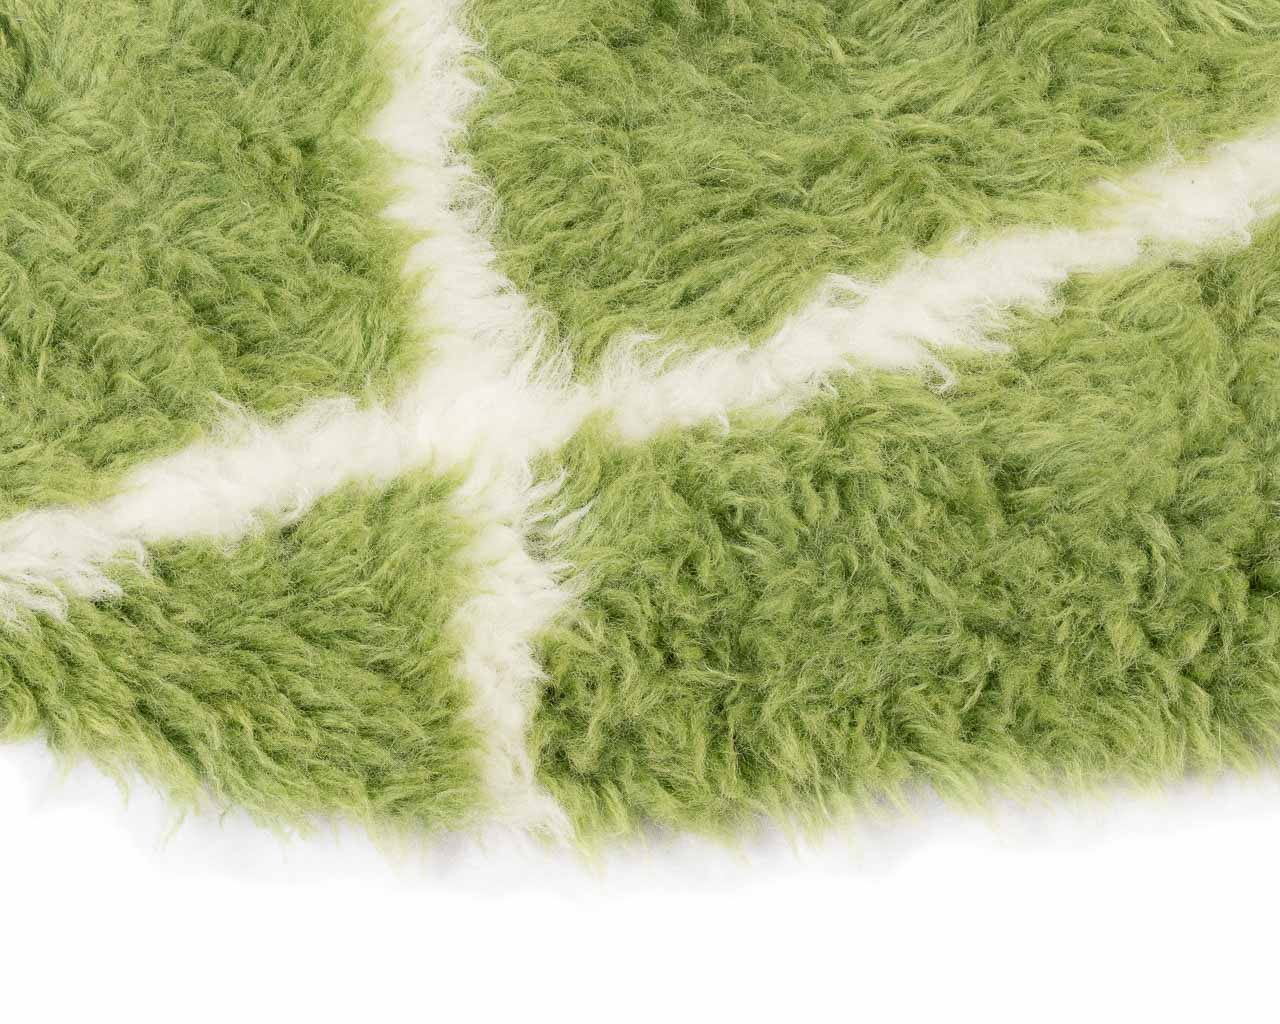 fluffy texture rug with white rhombus